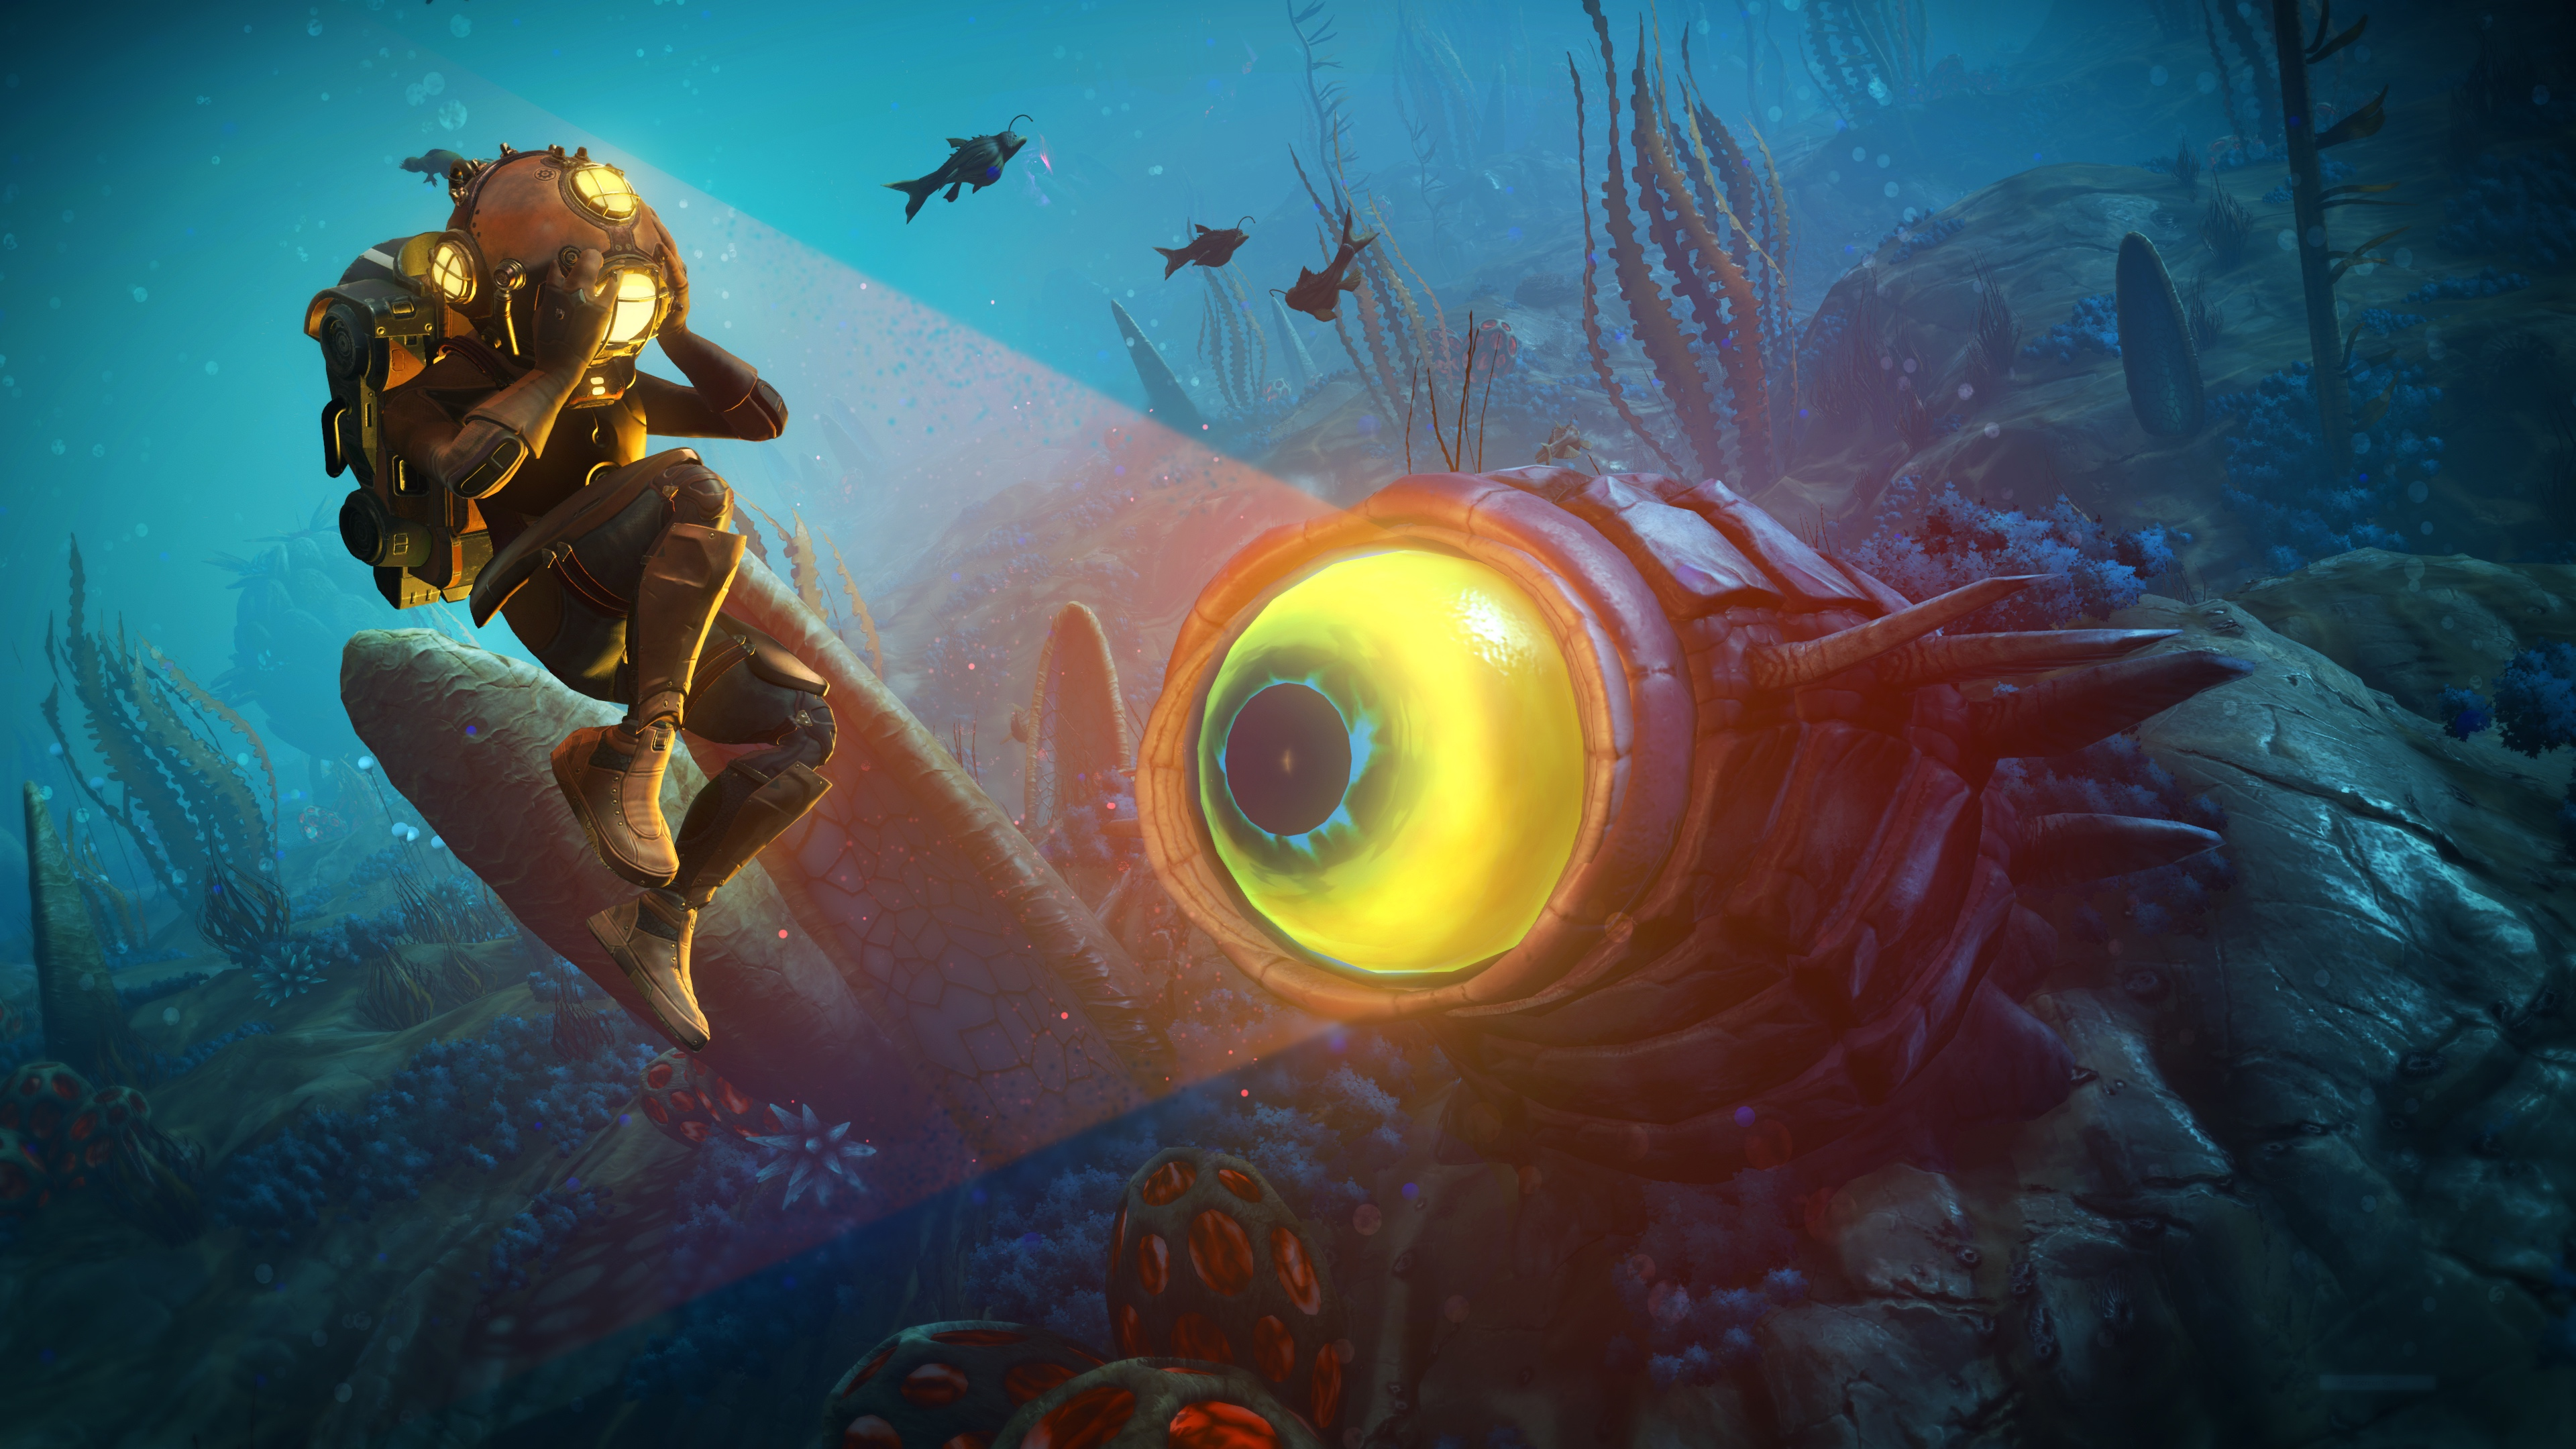 A space explorer swims underwater near a one-eyed alien creature in a screenshot from No Man's Sky